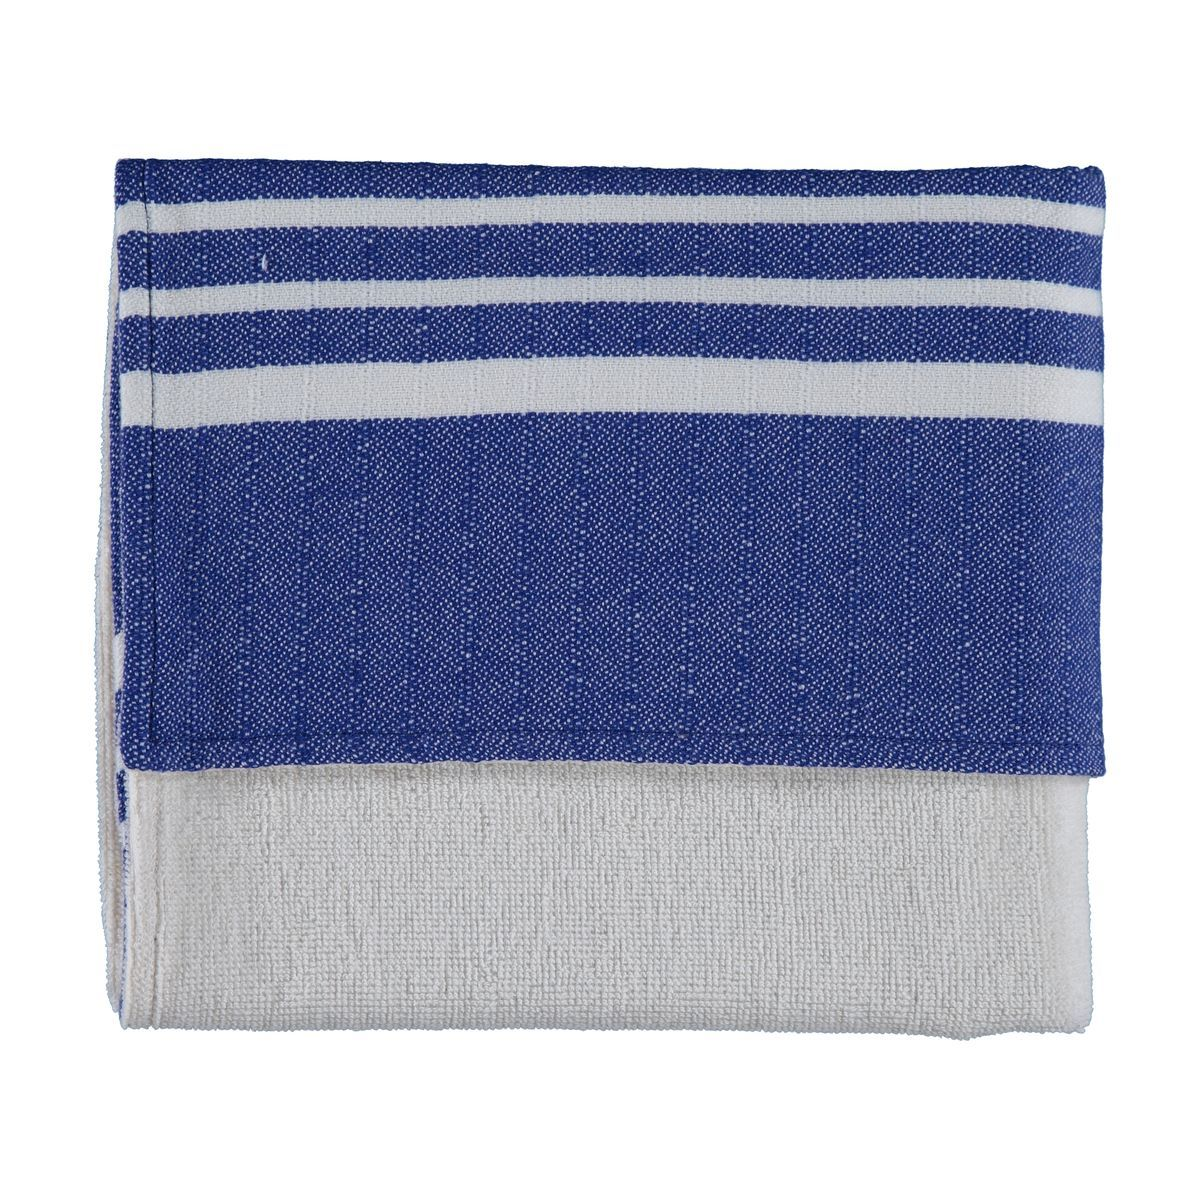 Peshtowel Mini Sultan / Royal Blue